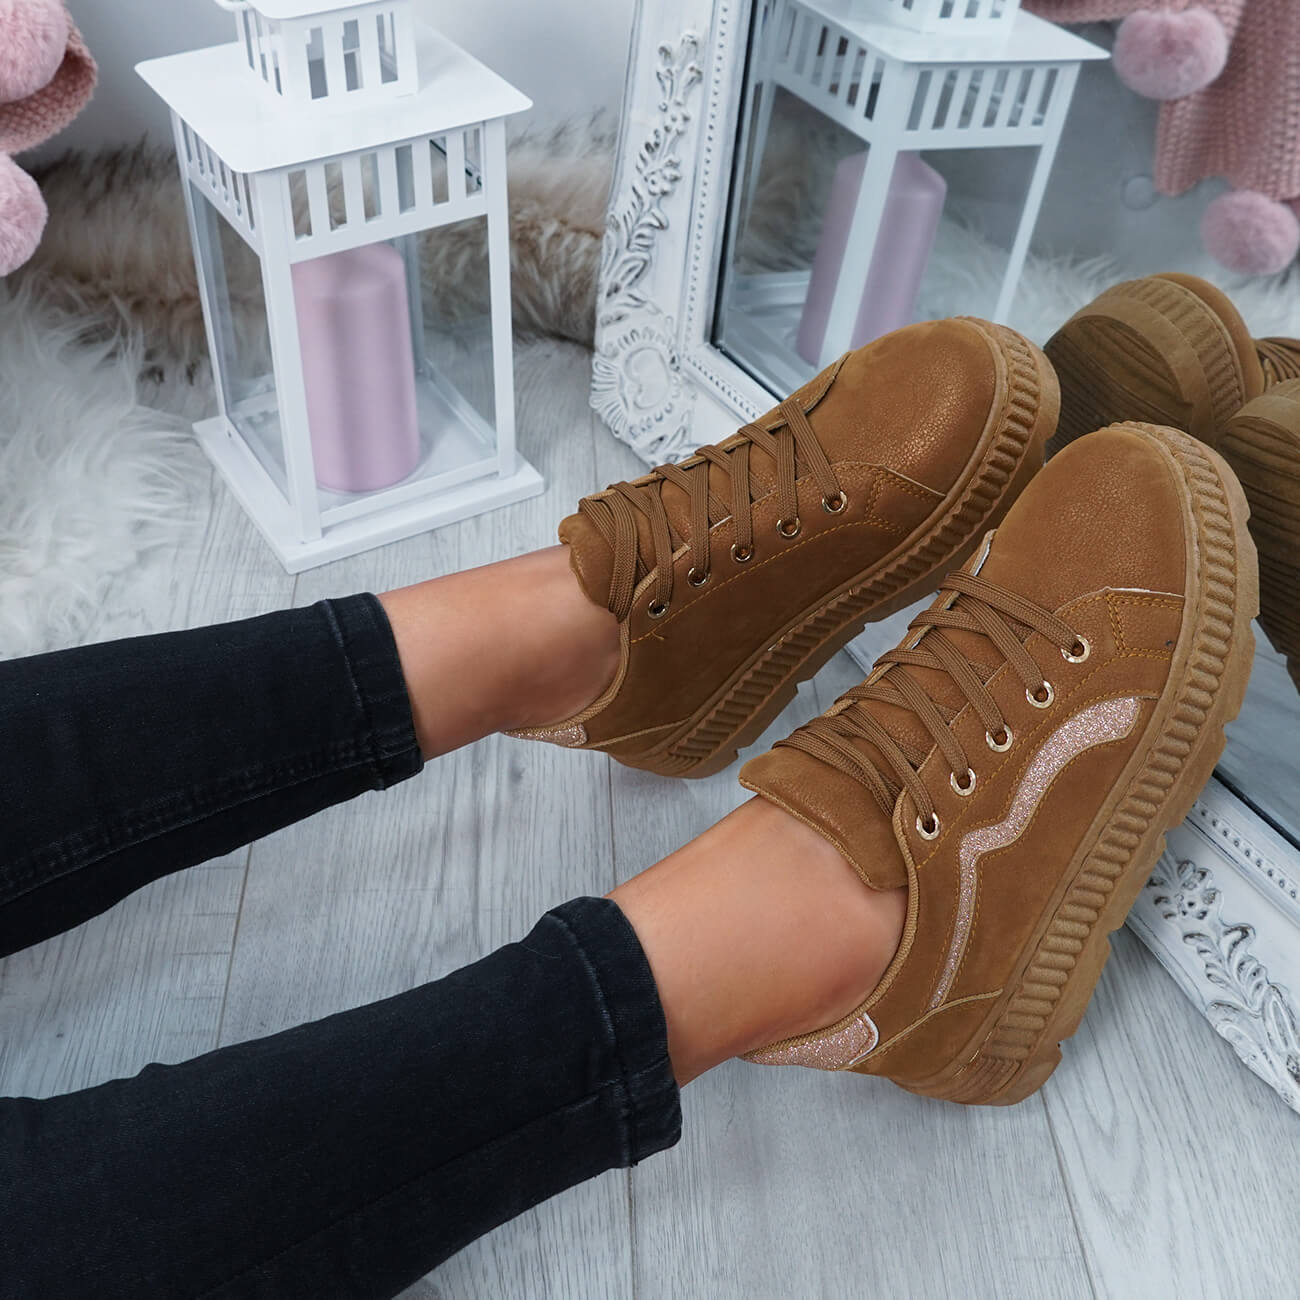 WOMENS-LADIES-LACE-UP-PLATFORM-TRAINERS-PLIMSOLL-SKATE-SNEAKERS-SHOES-SIZE thumbnail 15